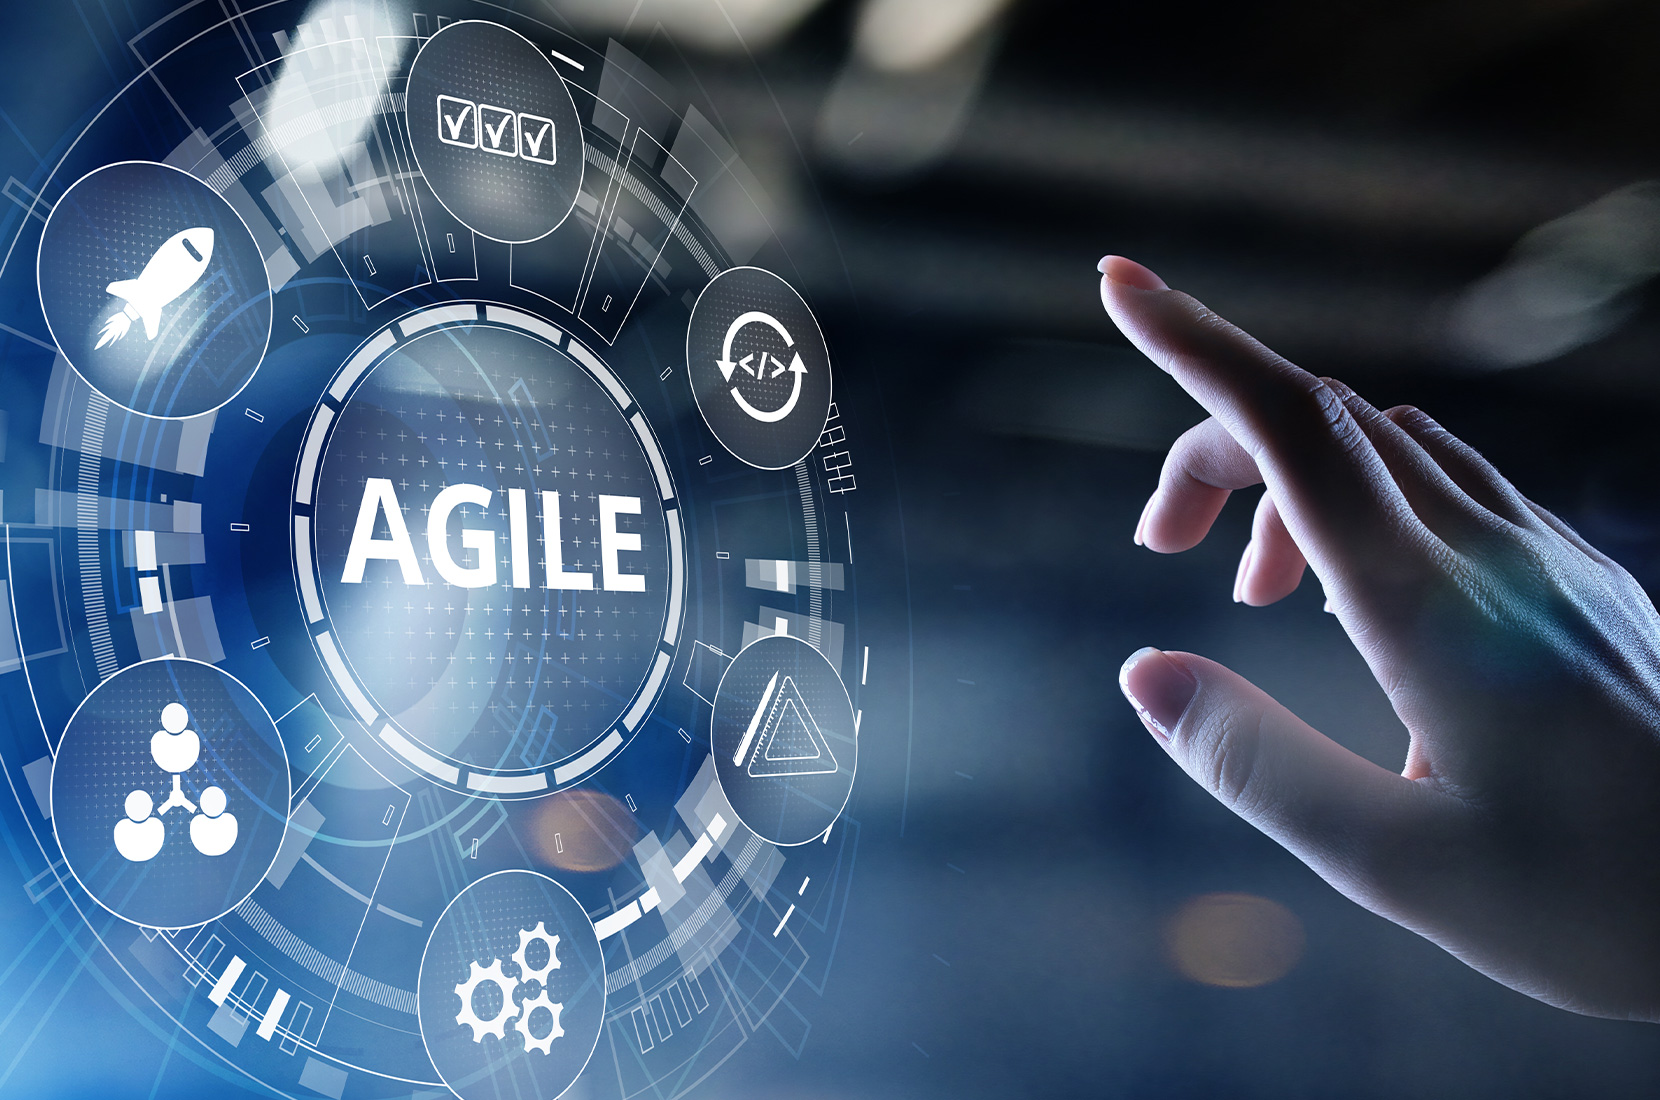 https://www.agilityconsulting.be/wp-content/uploads/2021/03/mes-valeurs-agile.jpg